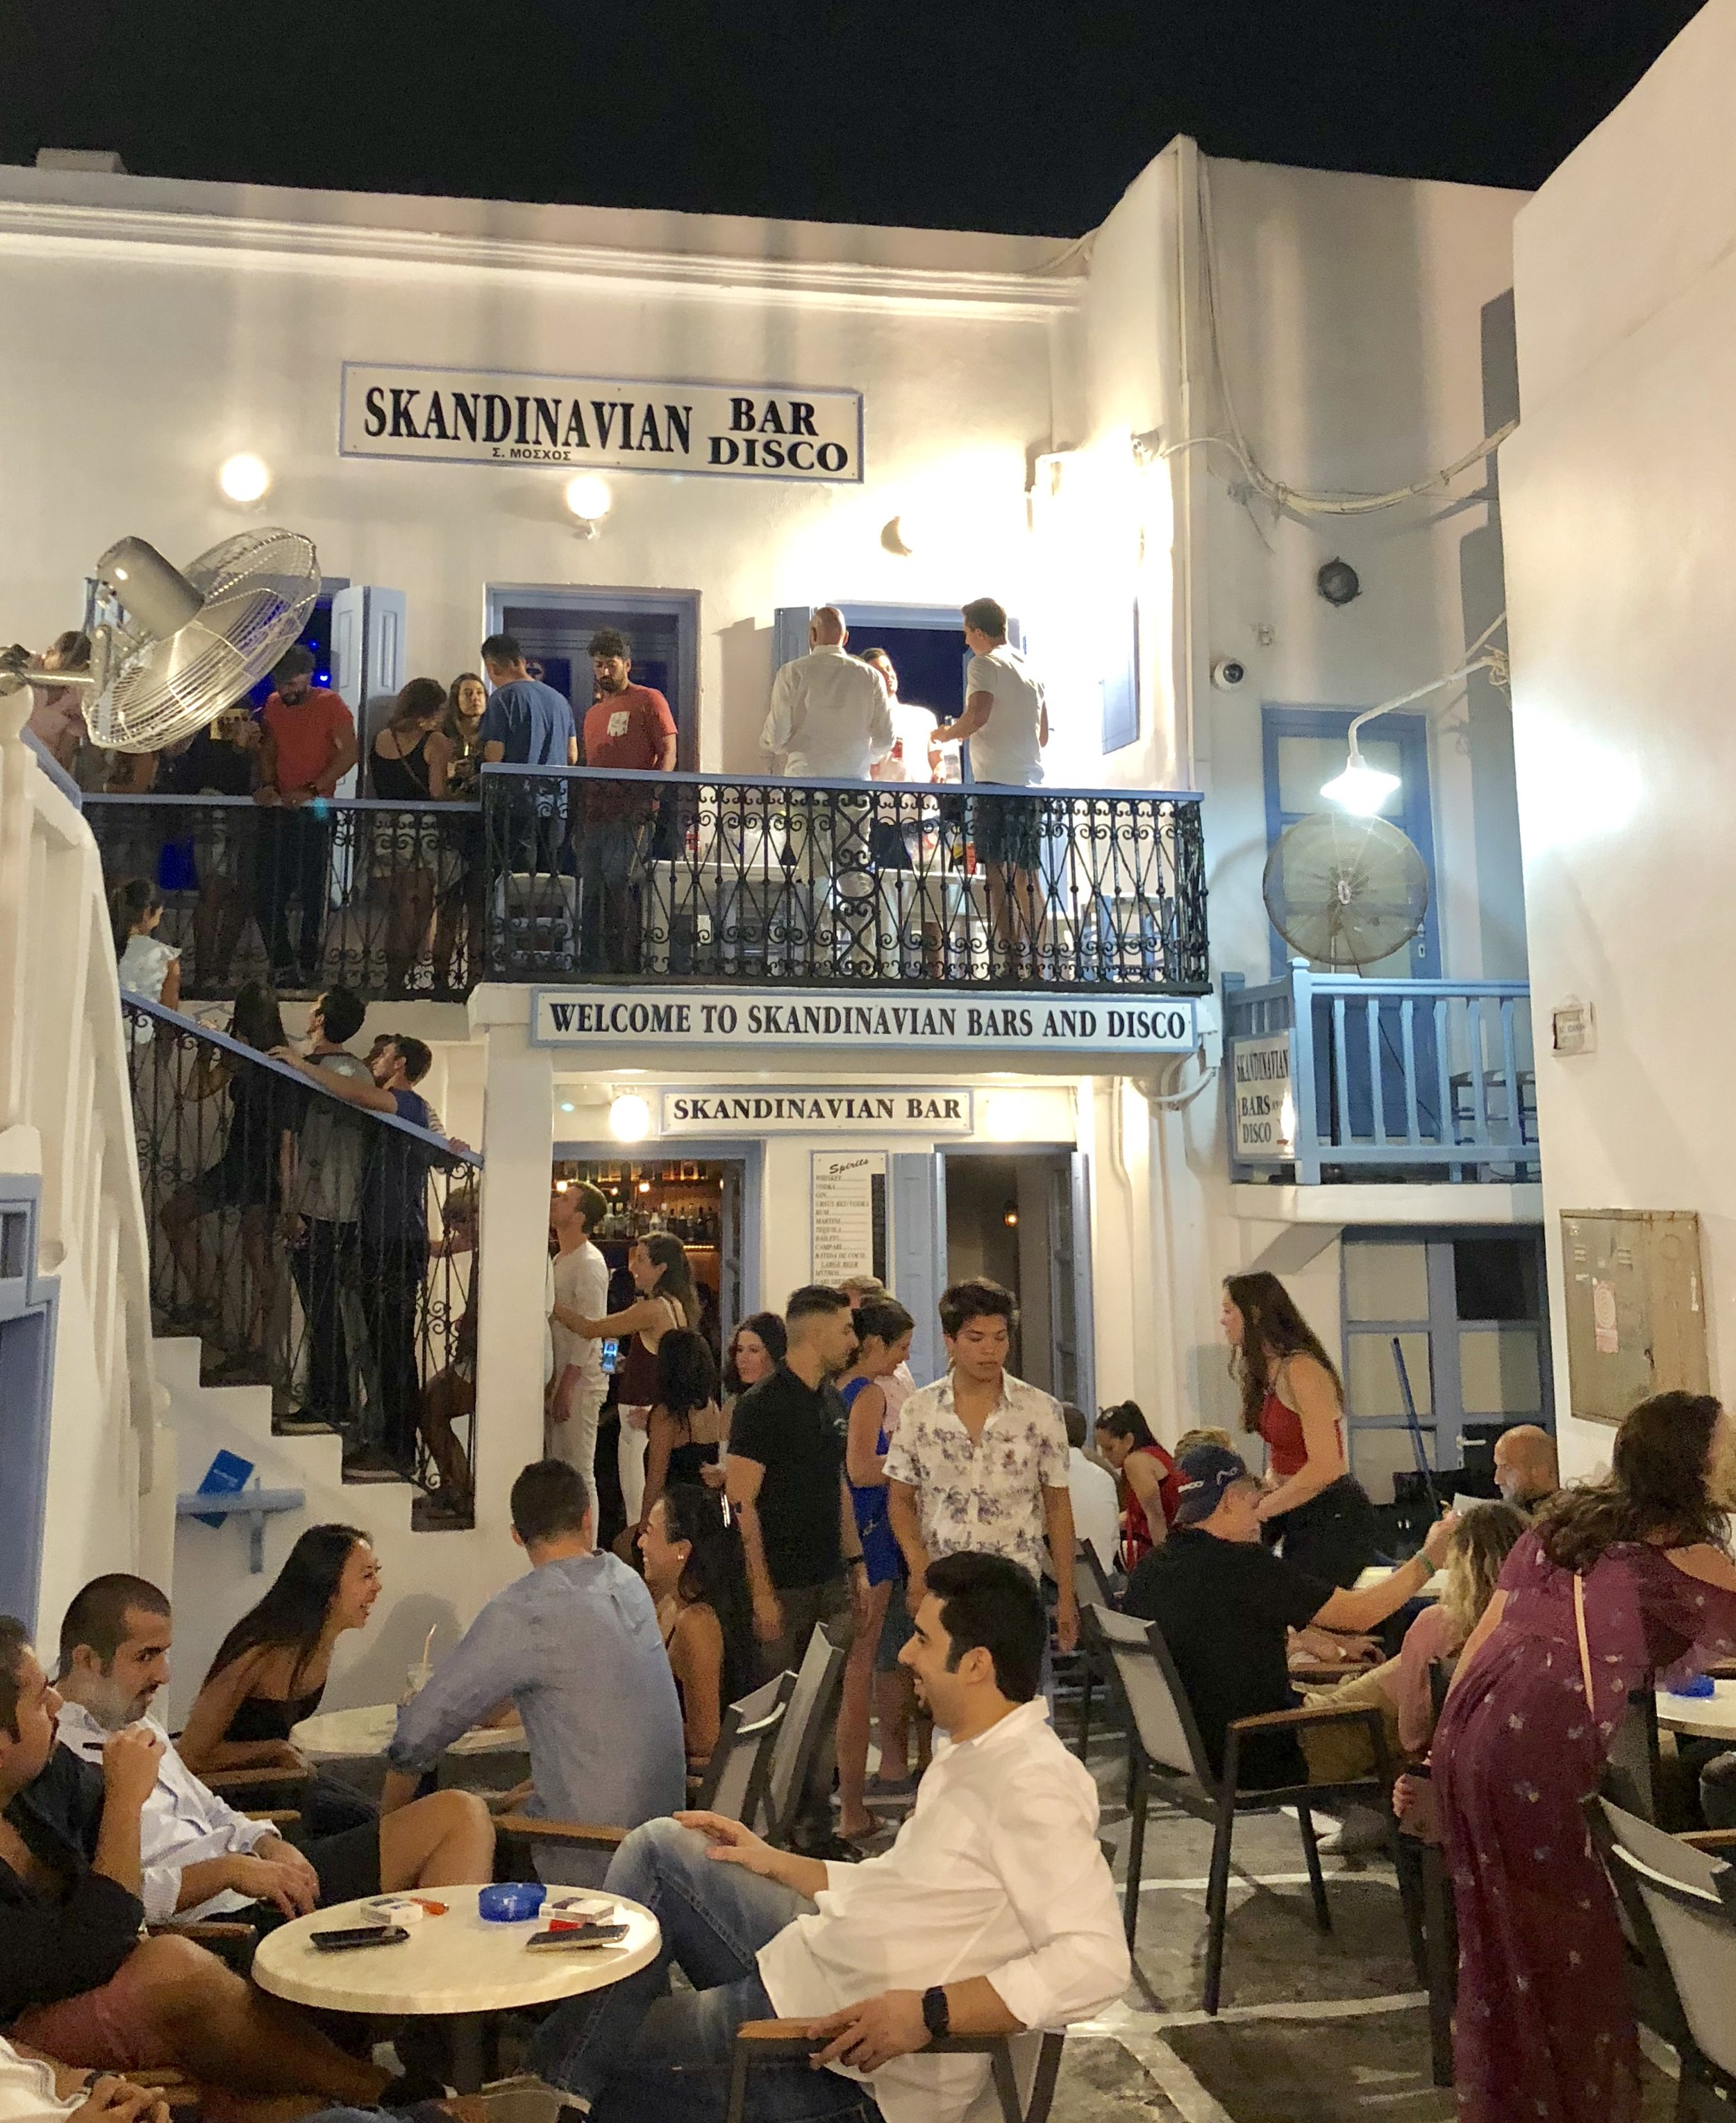 The nightlife in Mykonos lives up to the hype. Plan to stay up late and maybe stop in the Skandinavian - one of the most famous discos on the island!